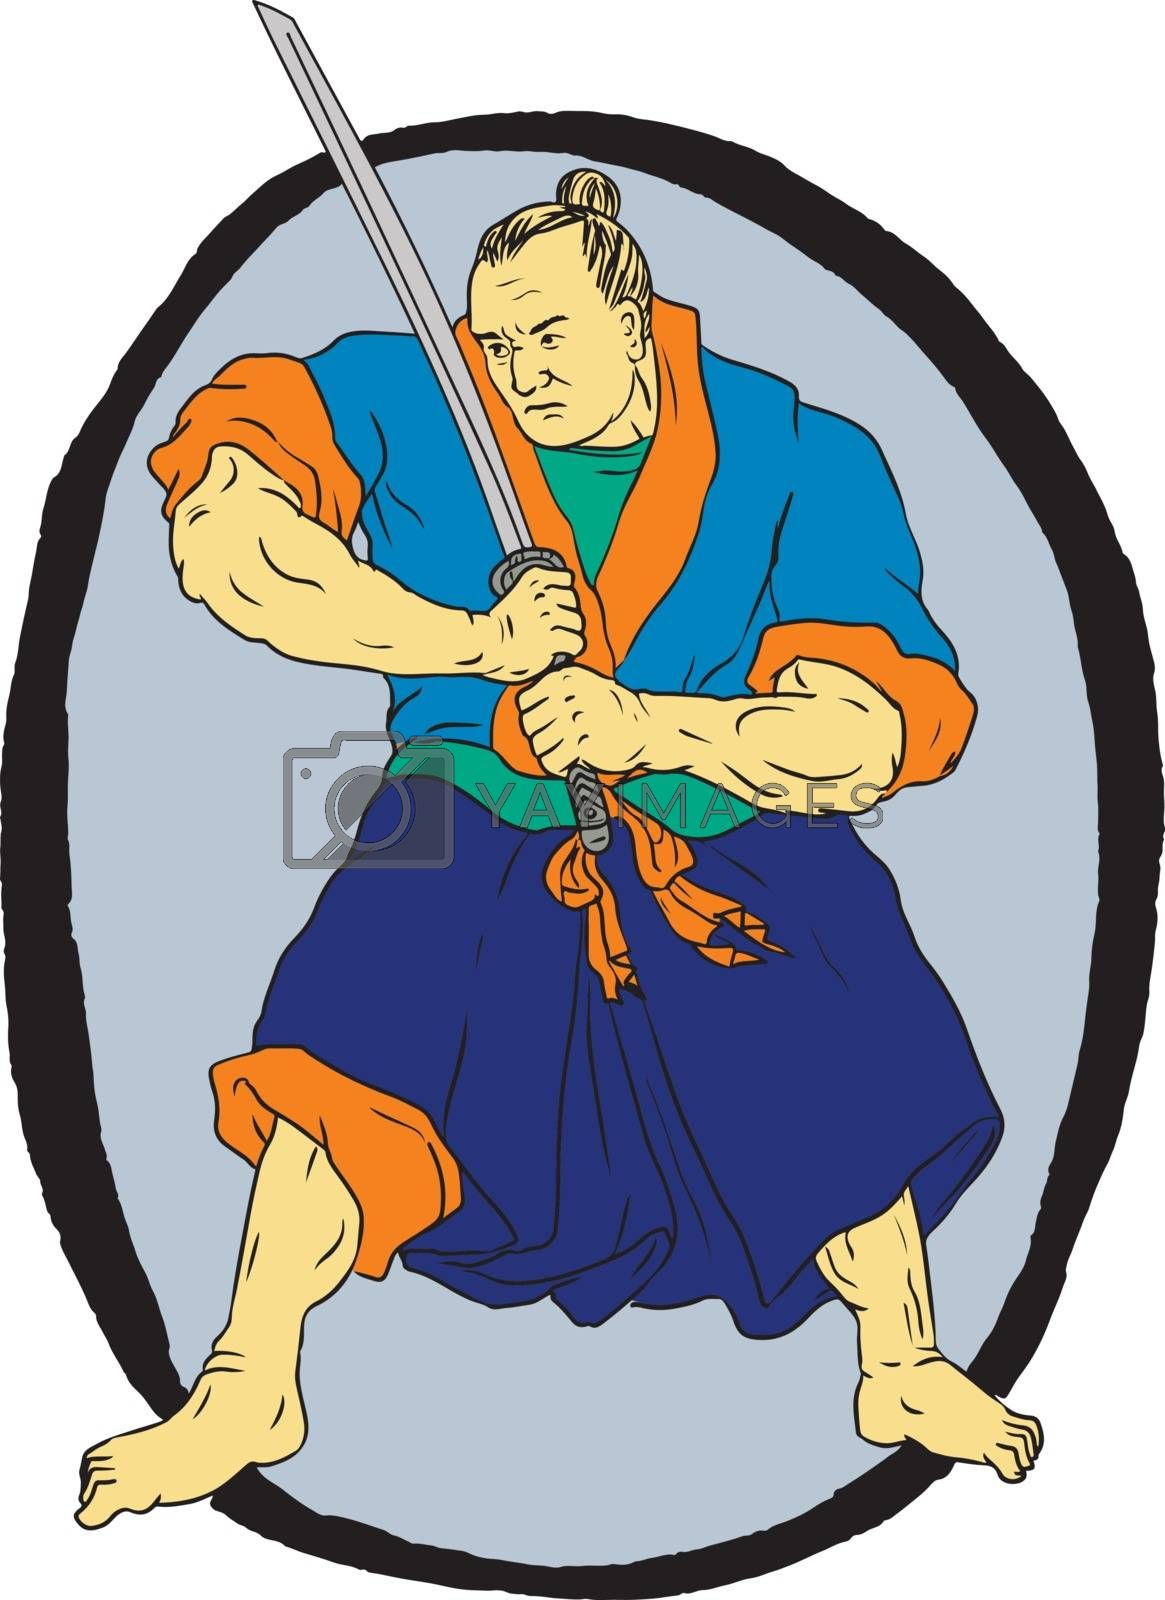 Drawing sketch style illustration of a Samurai Warrior wielding Katana sword in fighting stance set inside Enso circle on isolated background.